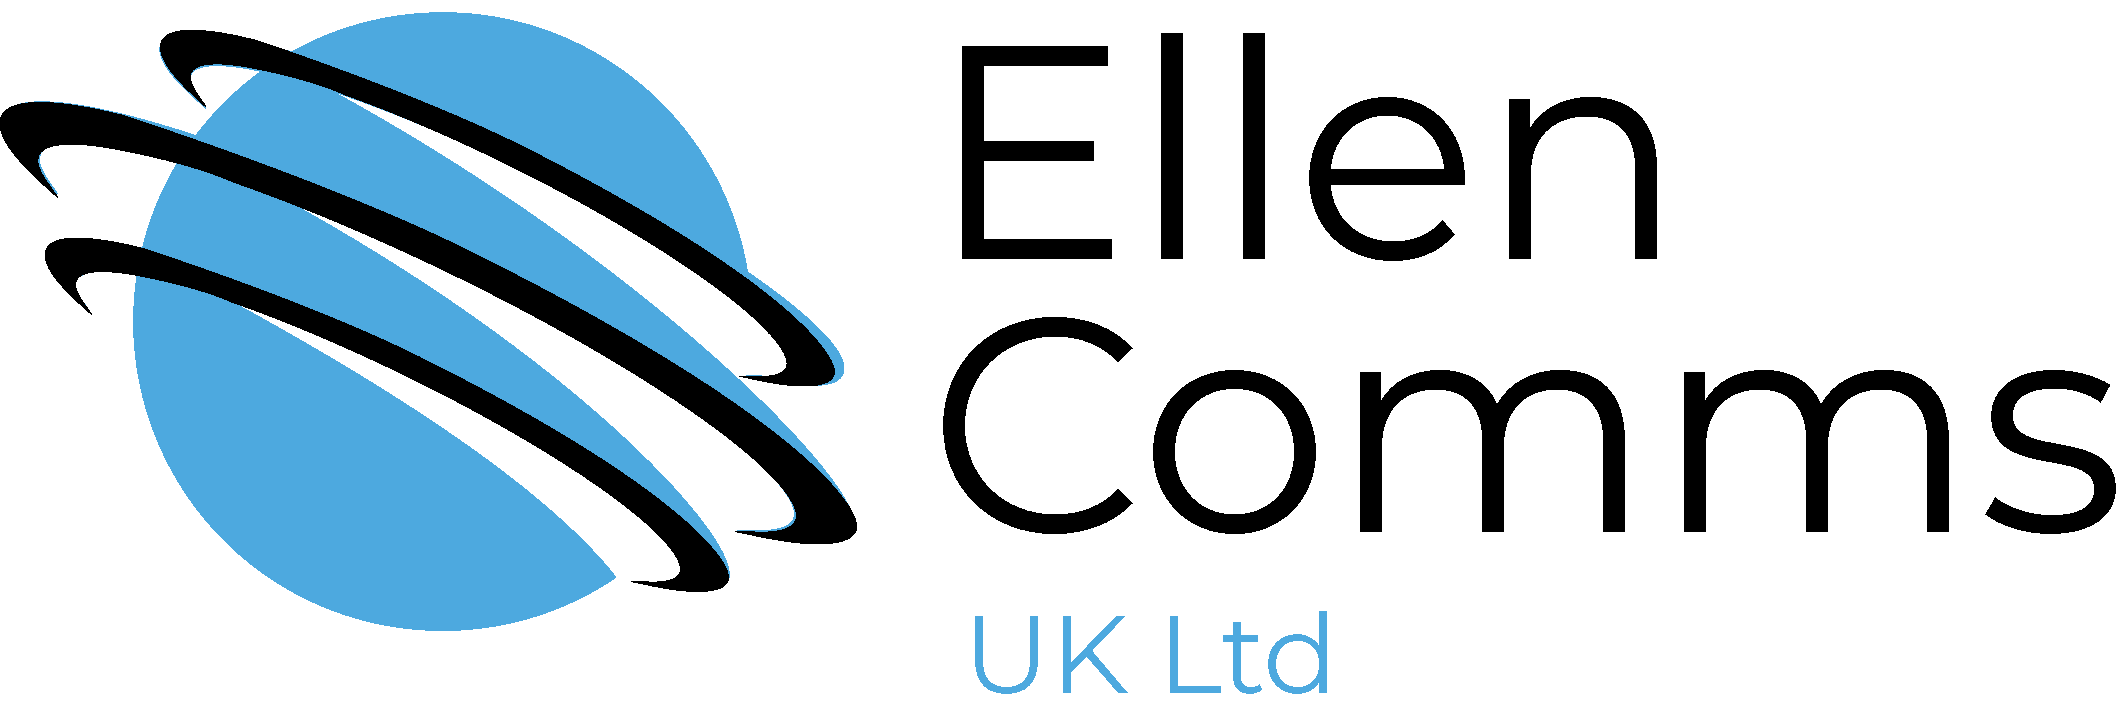 Creative branding company based in Bristol, UK. High level and top rated website and digital marketing company Clifton, Bristol.